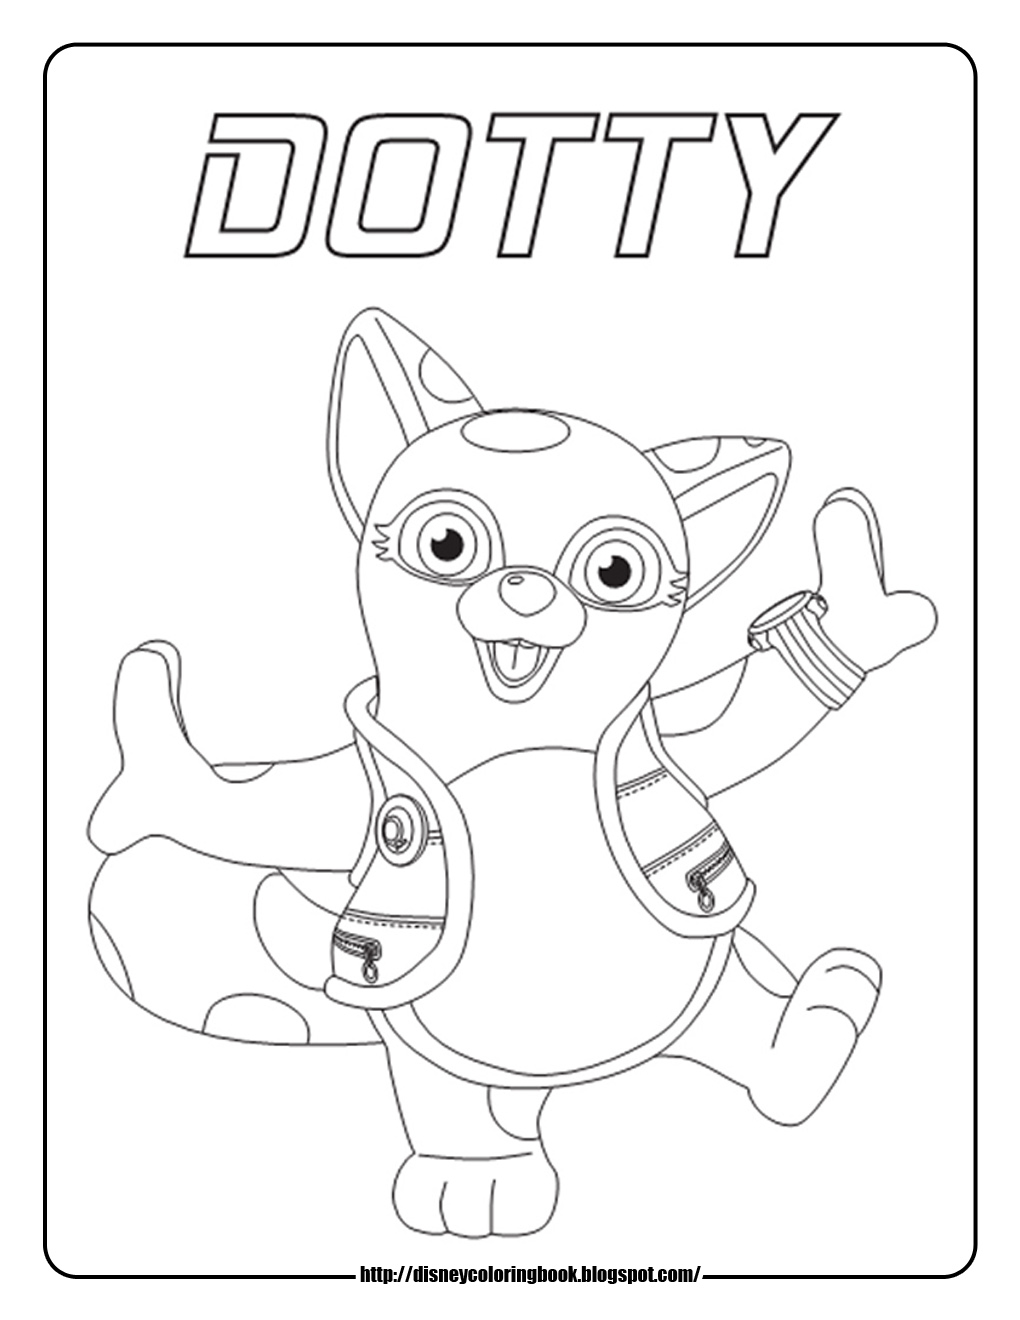 Disney Coloring Pages And Sheets For Kids Special Agent Oso 1